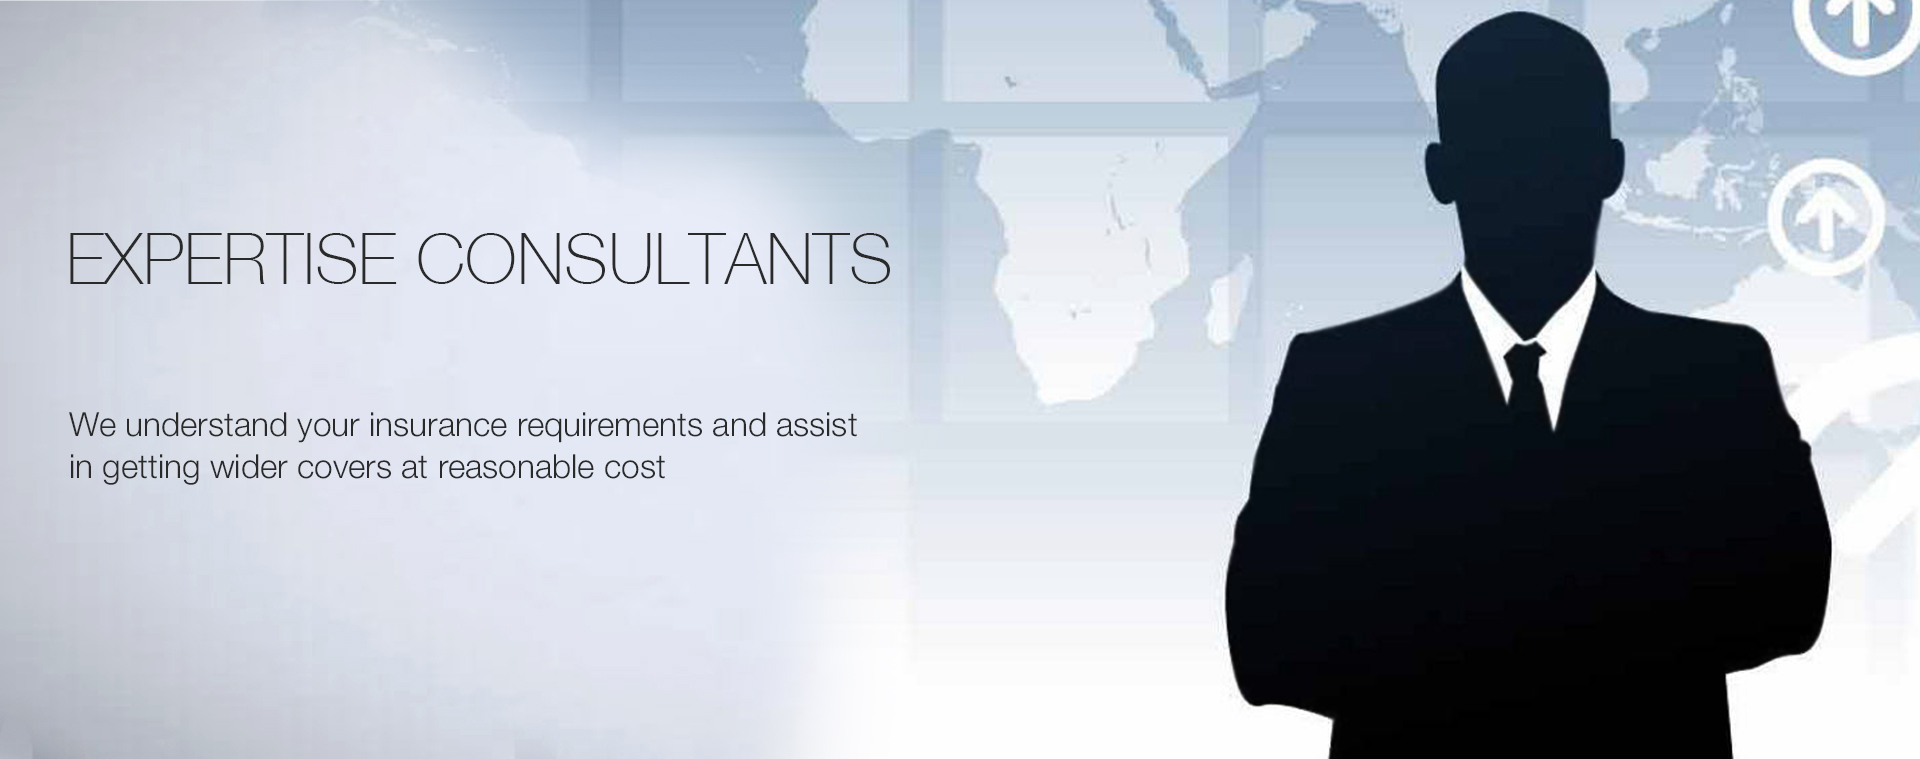 Expertise Consults - Relleno Insurance Broking Services Pvt Ltd